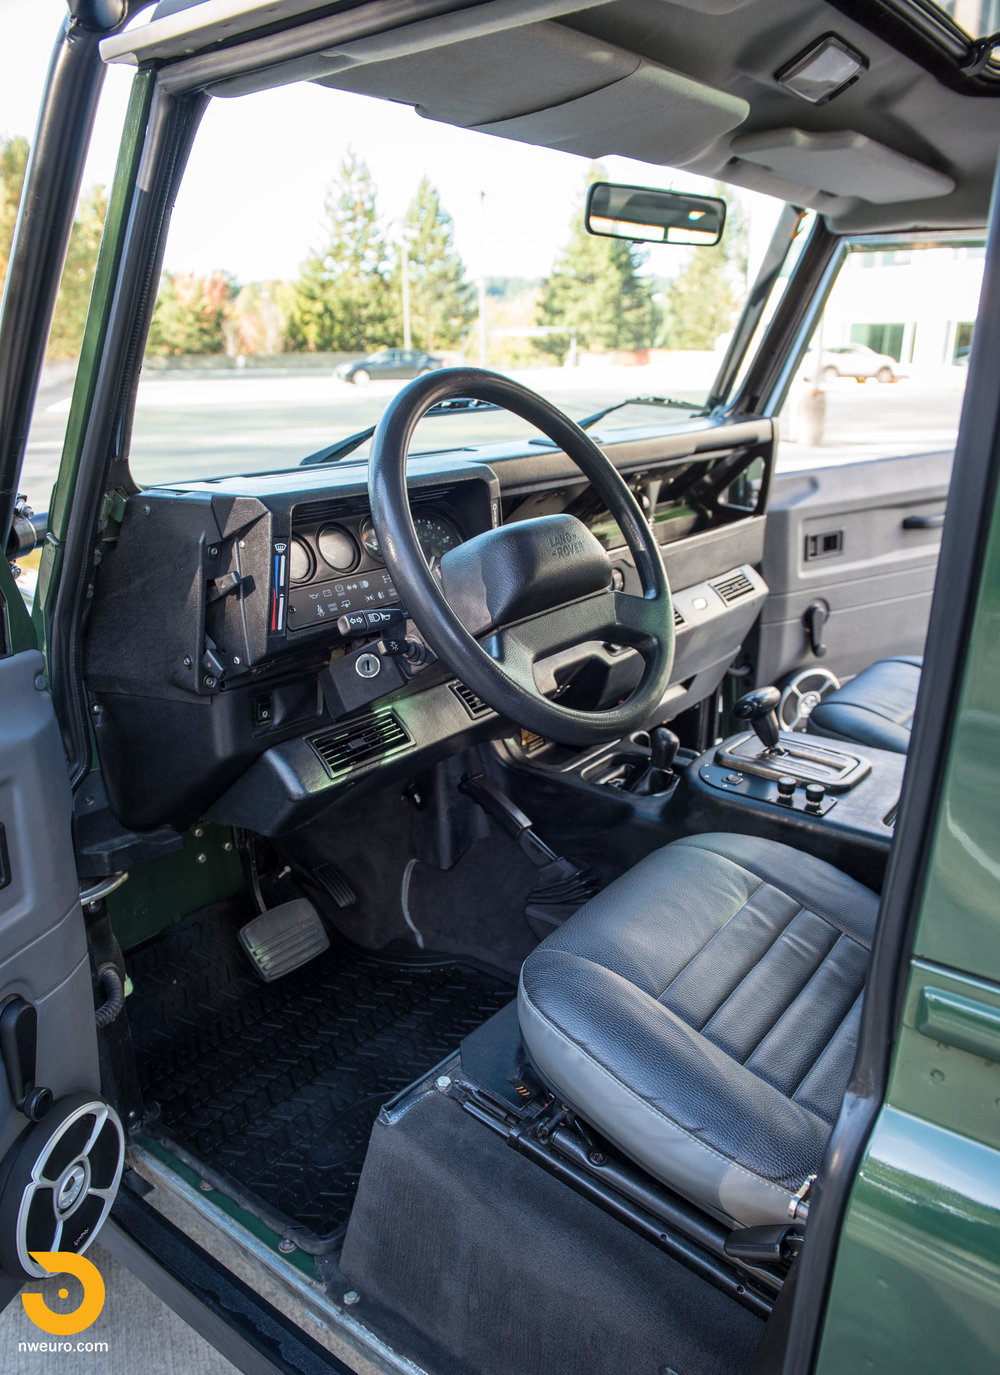 1997 Land Rover Defender 90 NAS-7.jpg